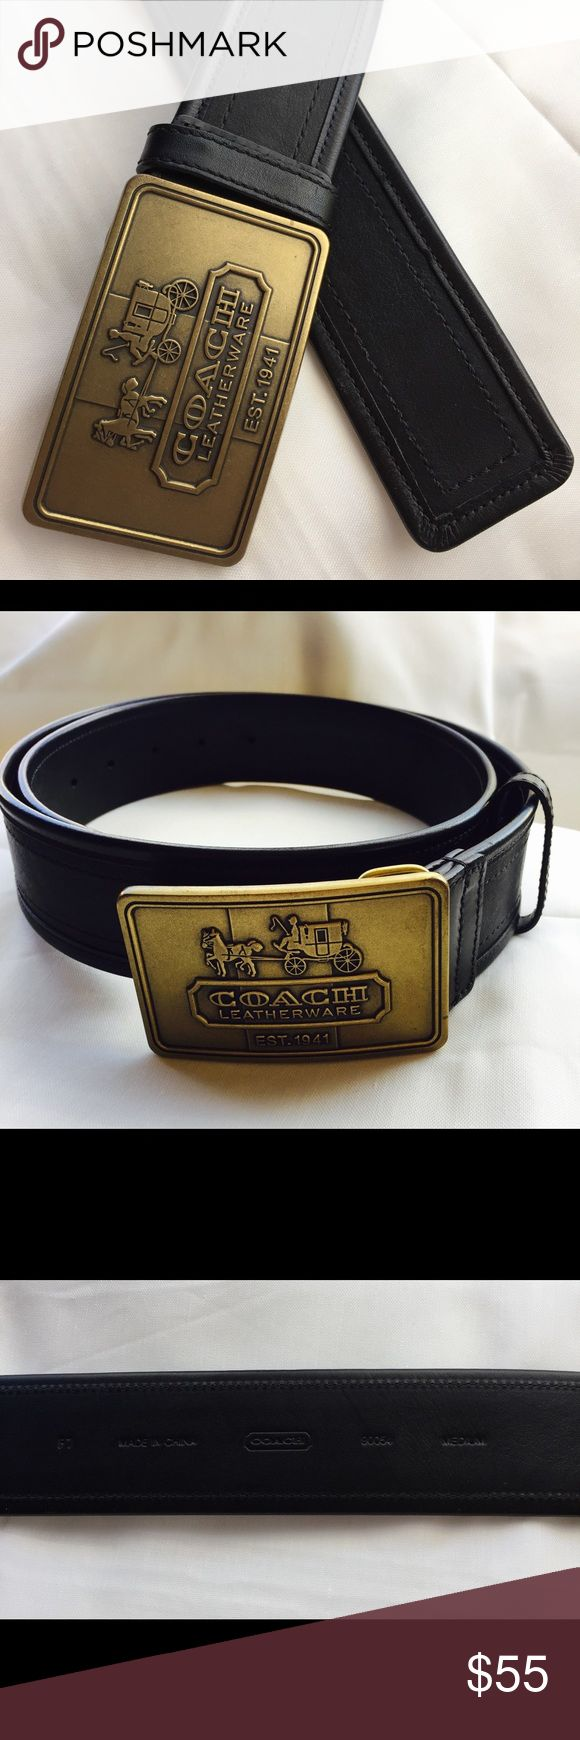 Coach brass belt buckle & black leather belt Rare Coach brass belt buckle and black leather belt. In excellent condition! Was only worn once. Size medium and measures at 40 inches Coach Accessories Belts